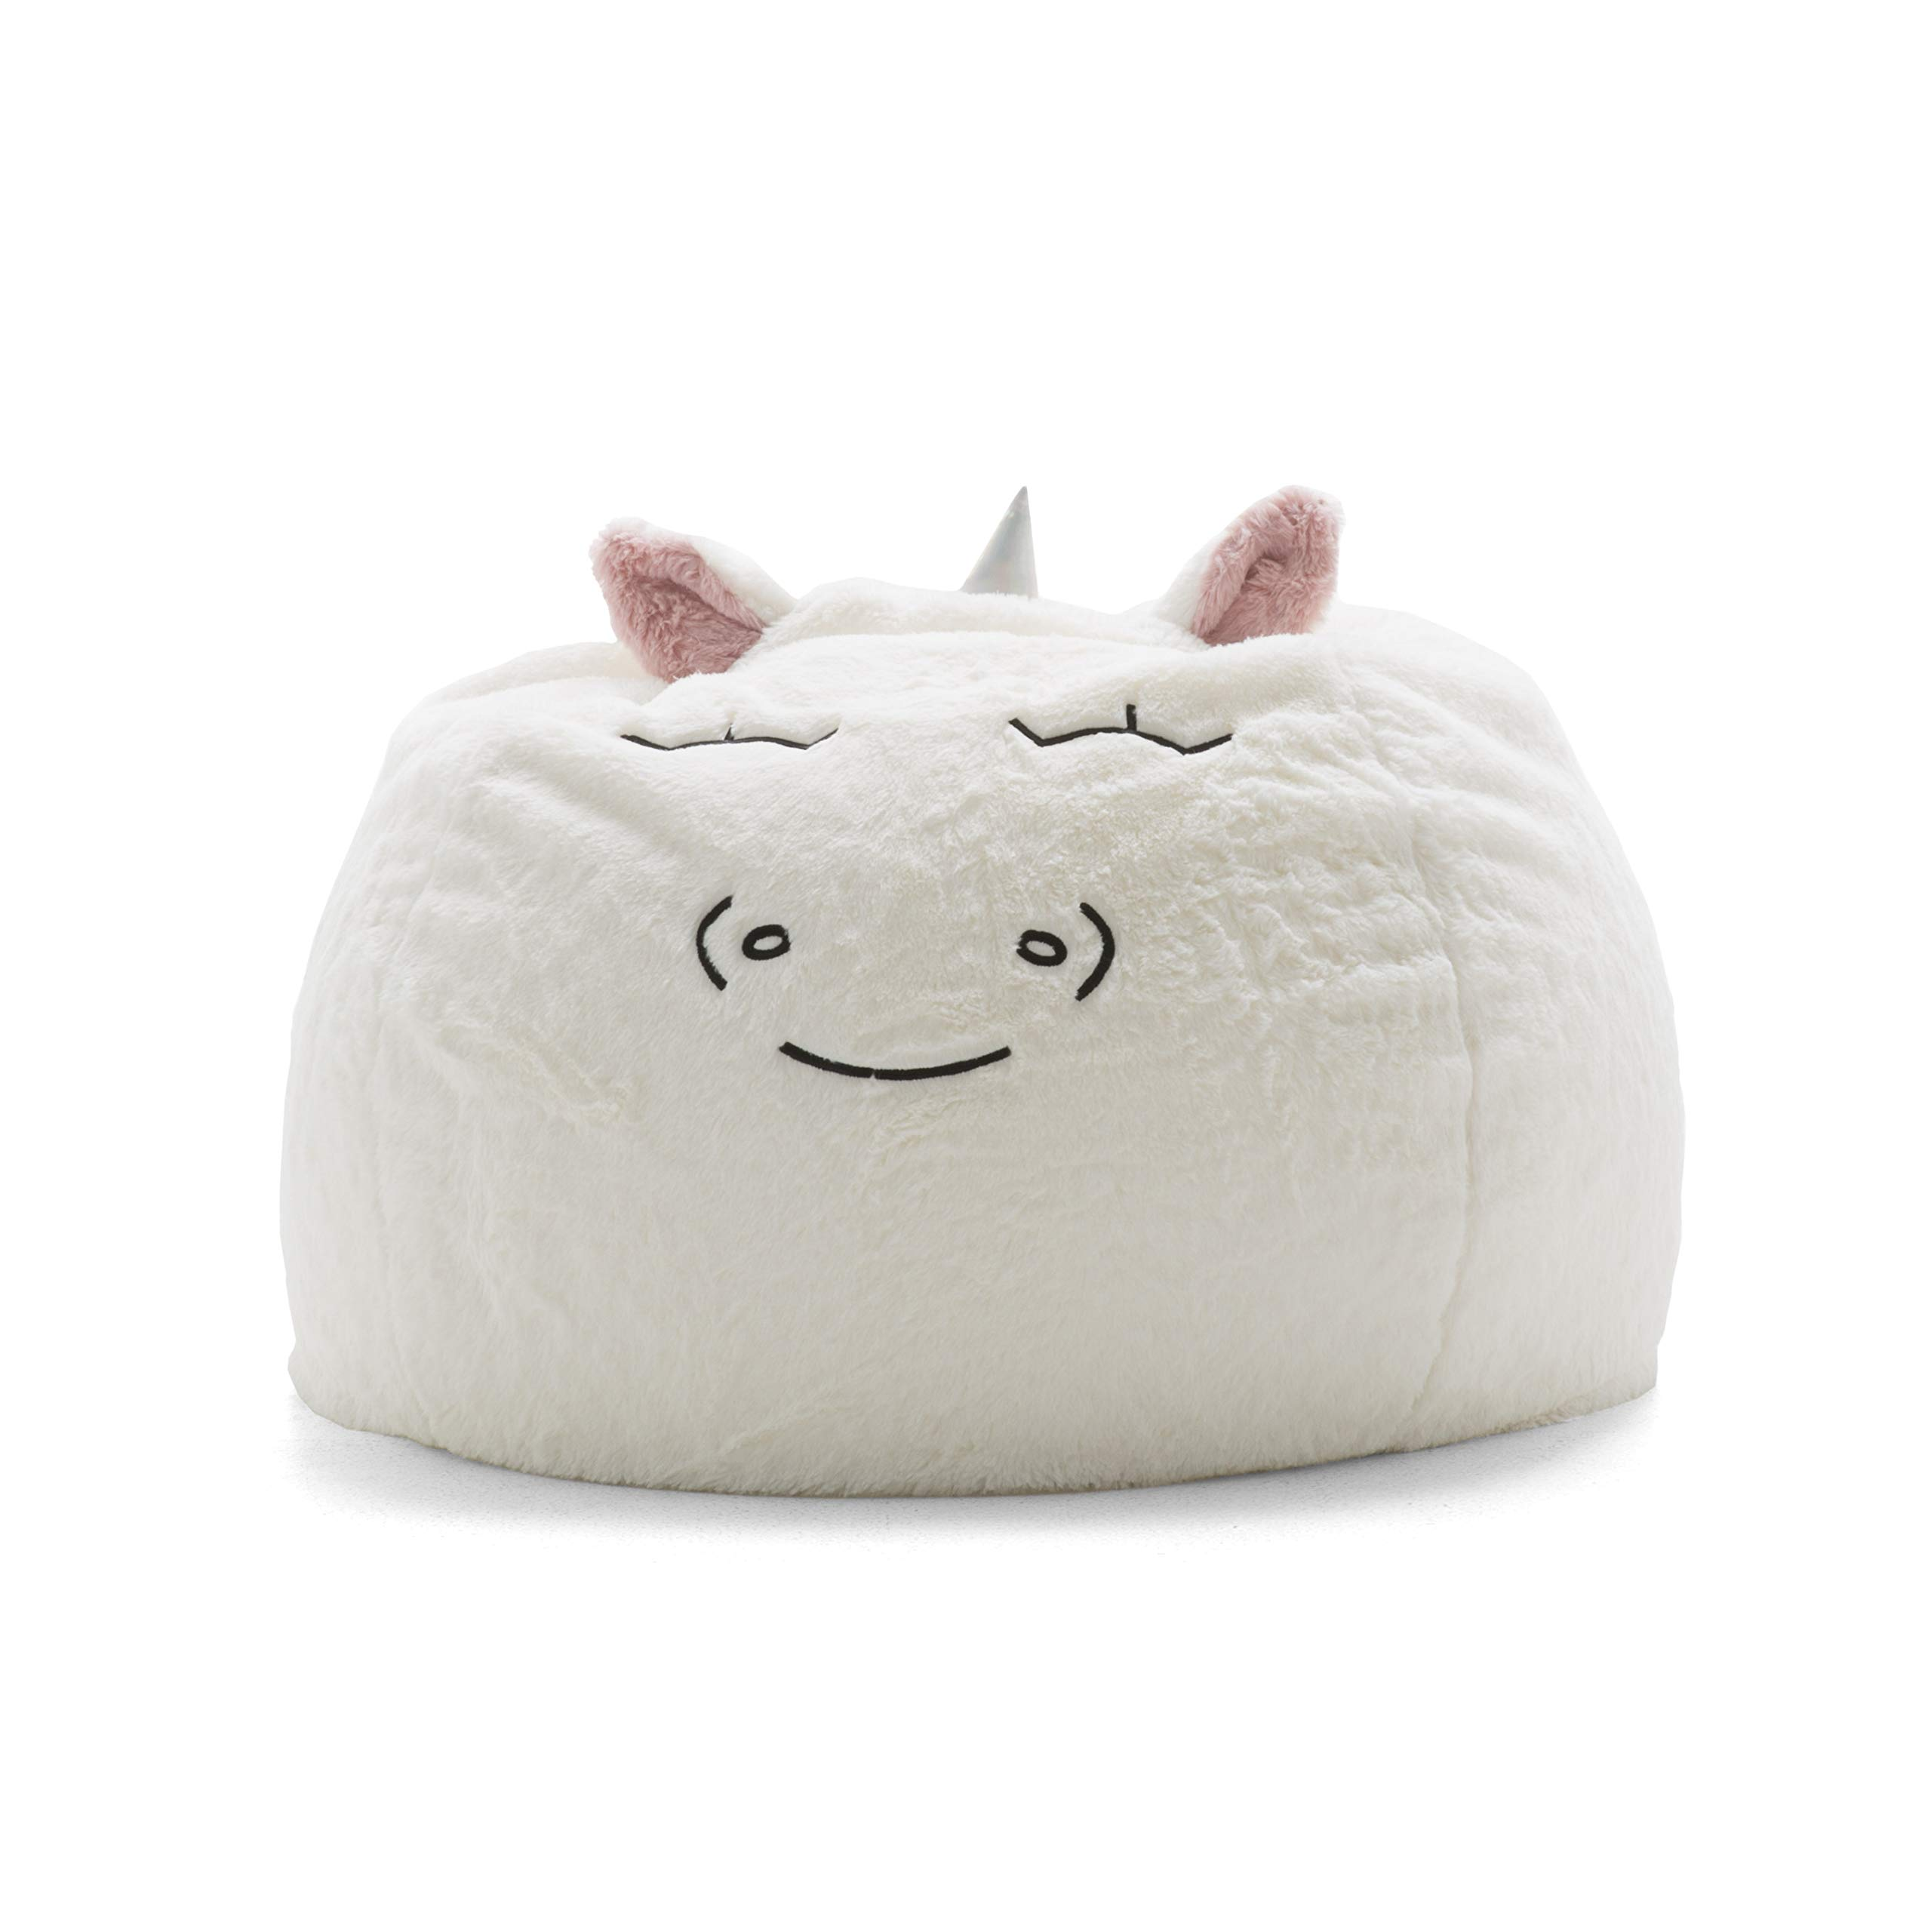 Big Joe Lux 7690UNI Wild Bunch Unicorn, Super Soft Plush Bean Bag, by Big Joe